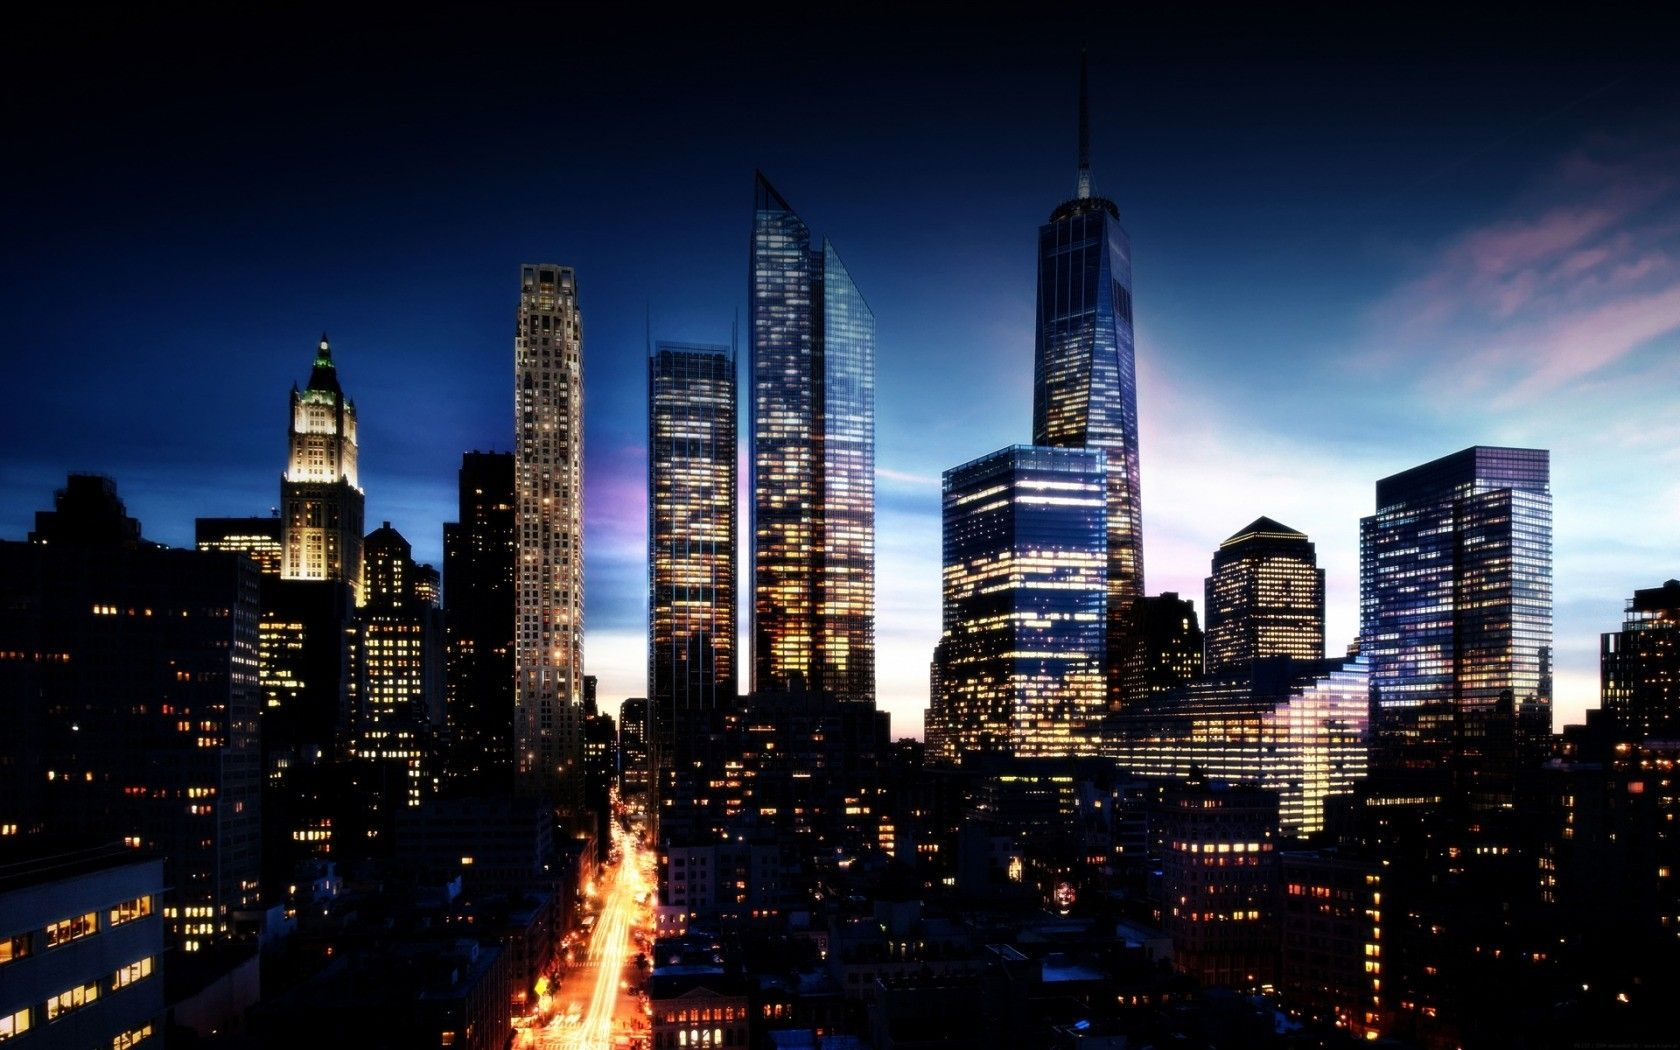 Night City Wallpaper Widescreen | Landscape Wallpapers | Pinterest ... for City Lights At Night Wallpaper  lp4eri